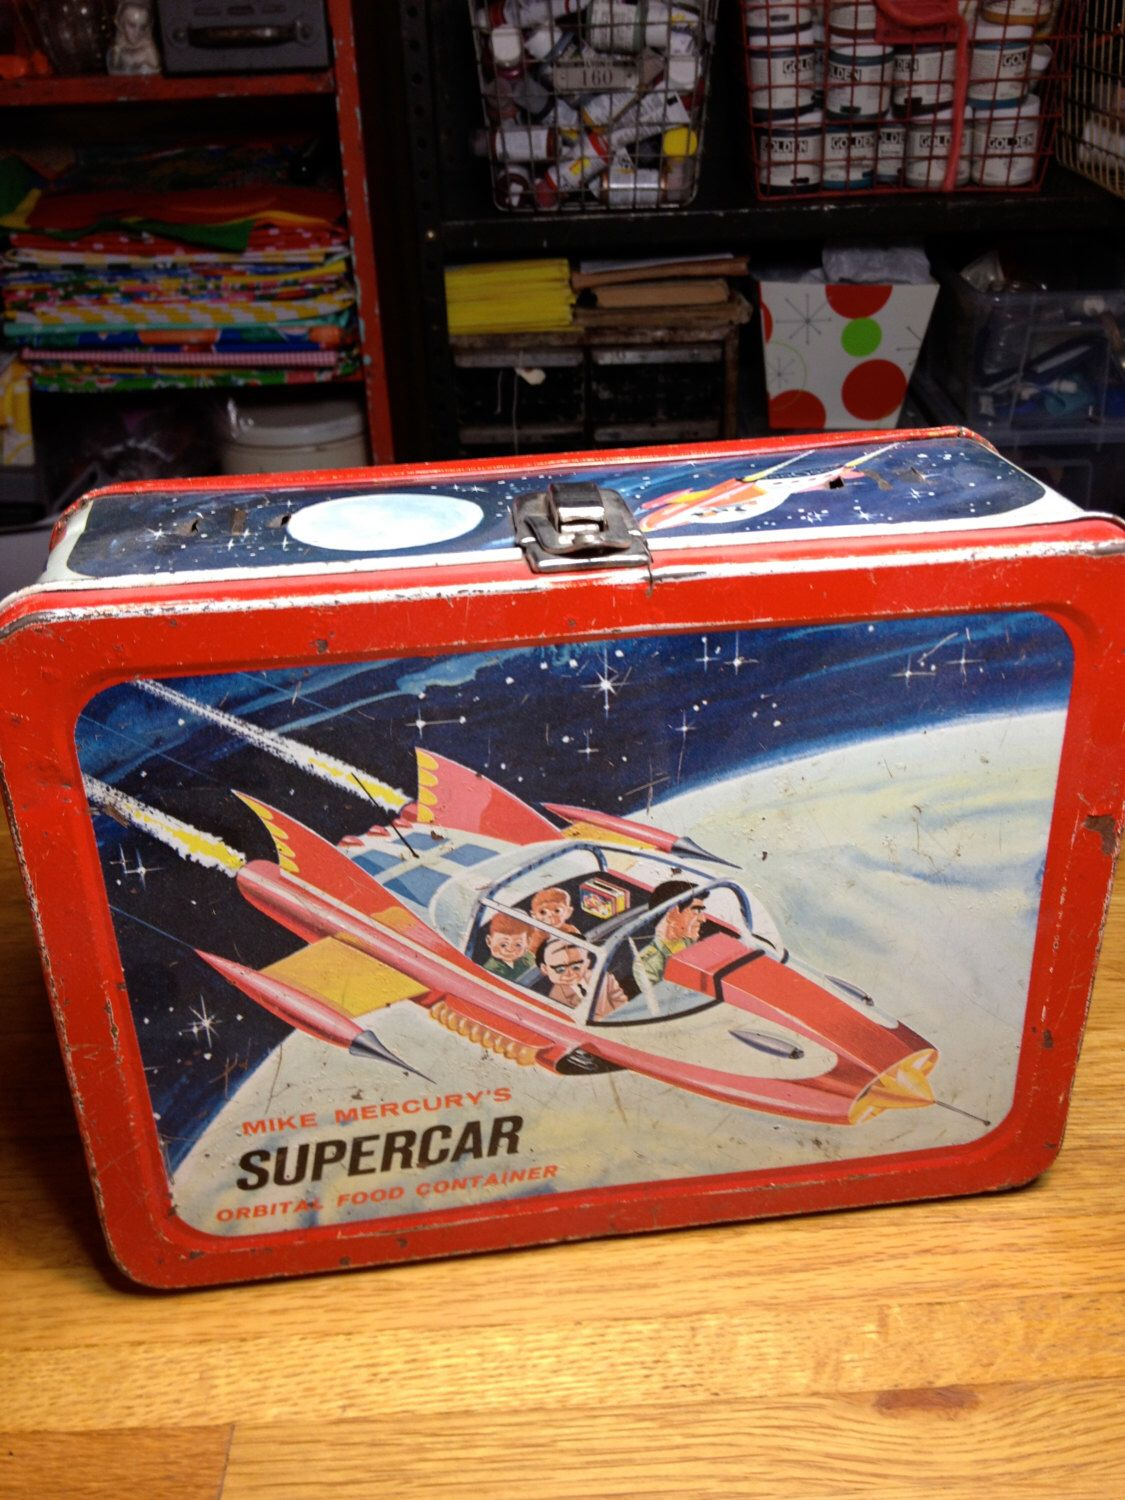 1962 Independant Television Corp Mike Mercury Supercar Orbital Food Metal Lunch Box Lunchbox Lunch Box Metal Lunch Box Super Cars